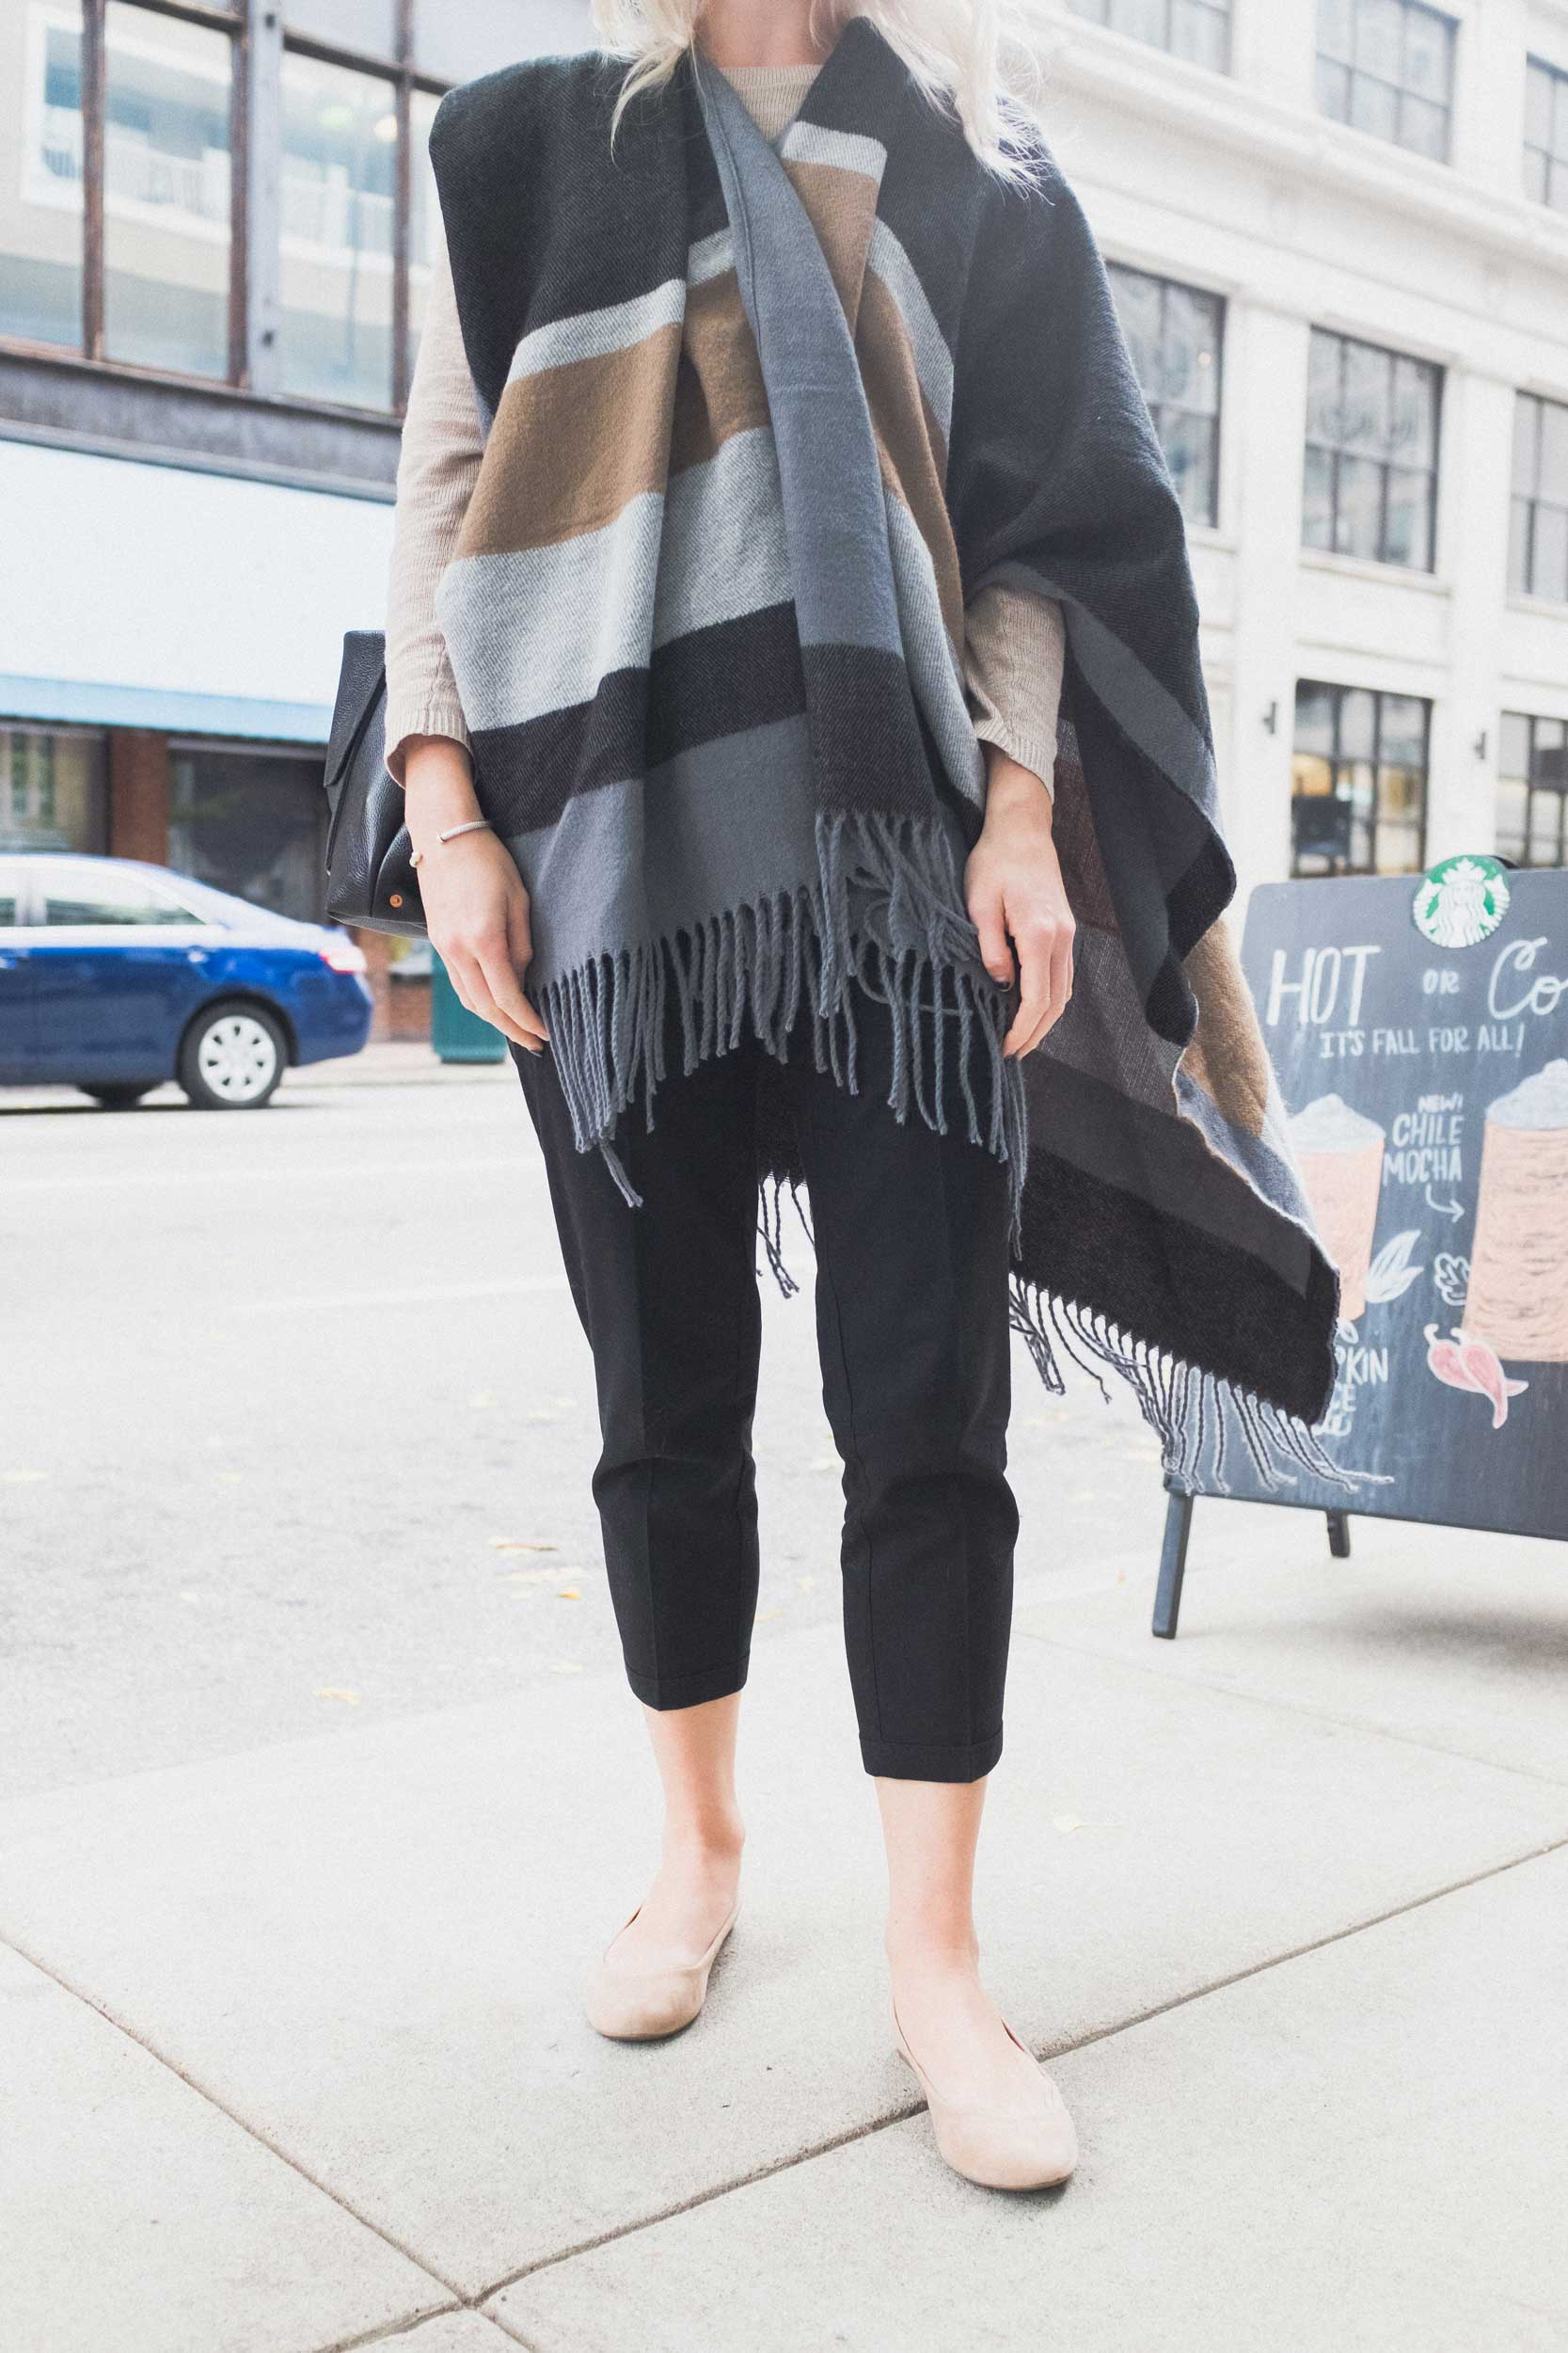 Lauren shows us how good cropped pants can look with nude flats and a perfectly subtle scarf.